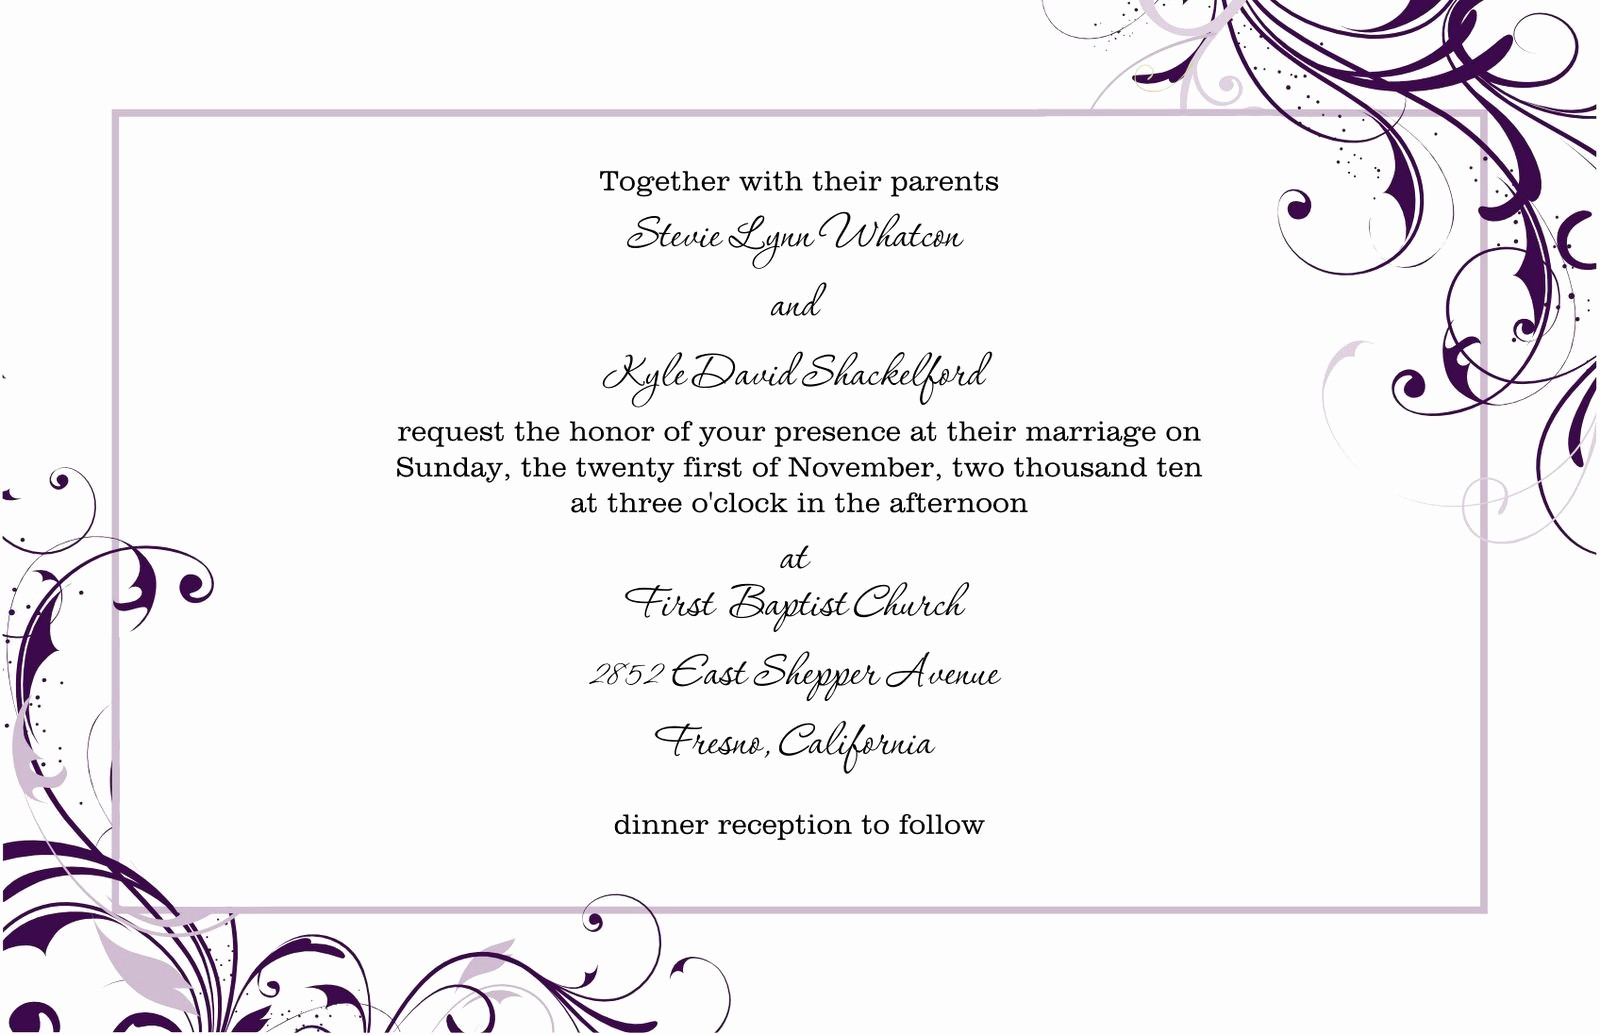 Party Invitations Templates Microsoft Word Beautiful Free Blank Wedding Invitation Templates for Microsoft Word